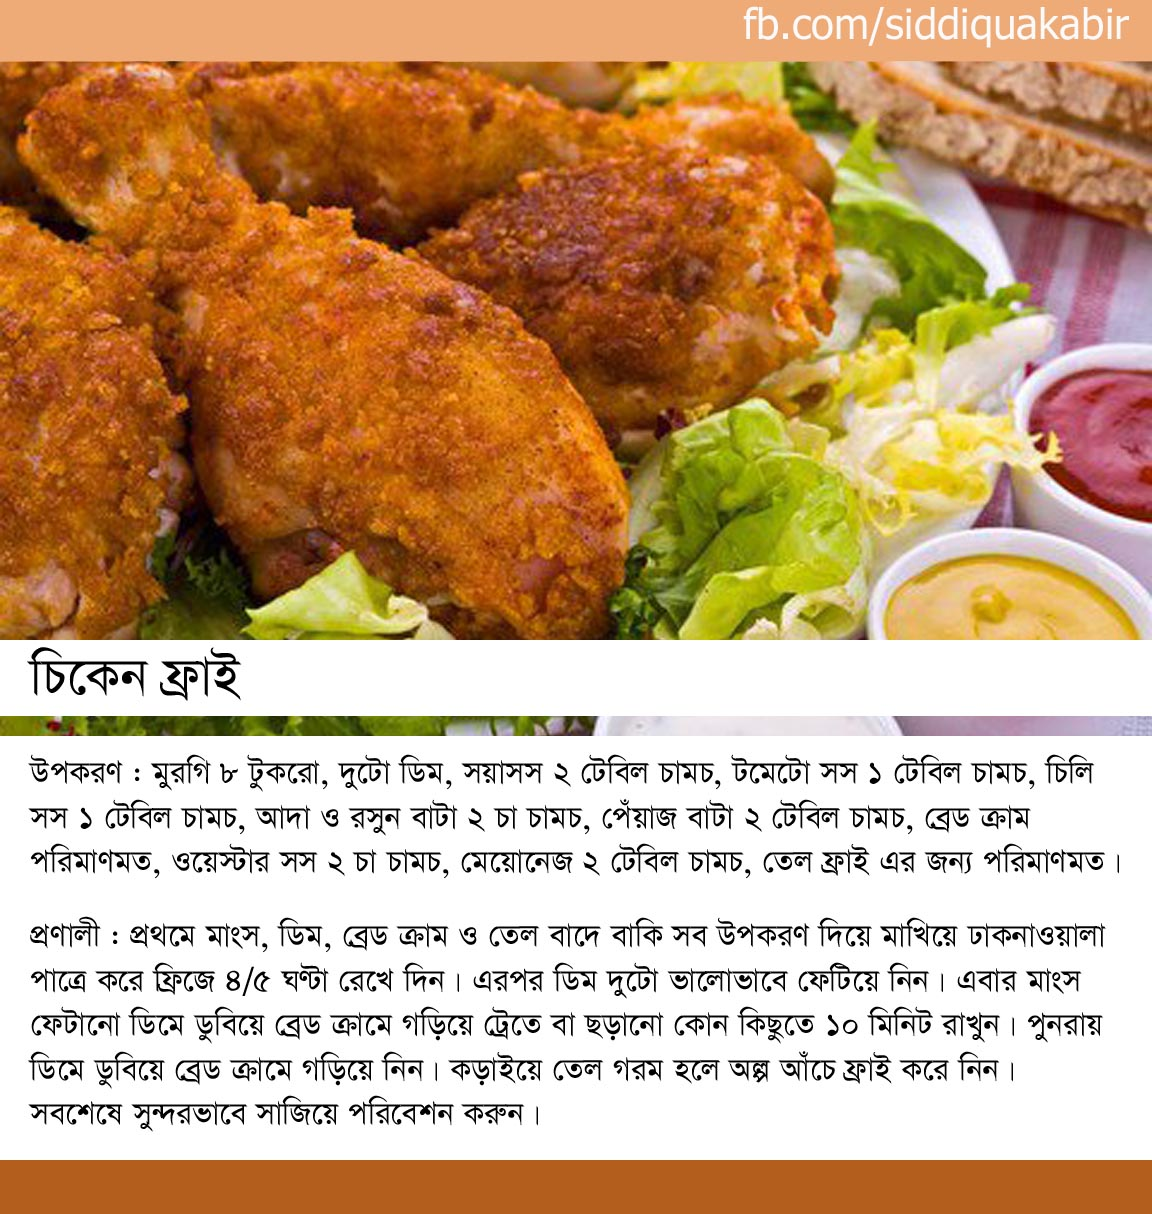 Siddiqua kabir bangali cooking chicken fry bangali cooking chicken fry forumfinder Images